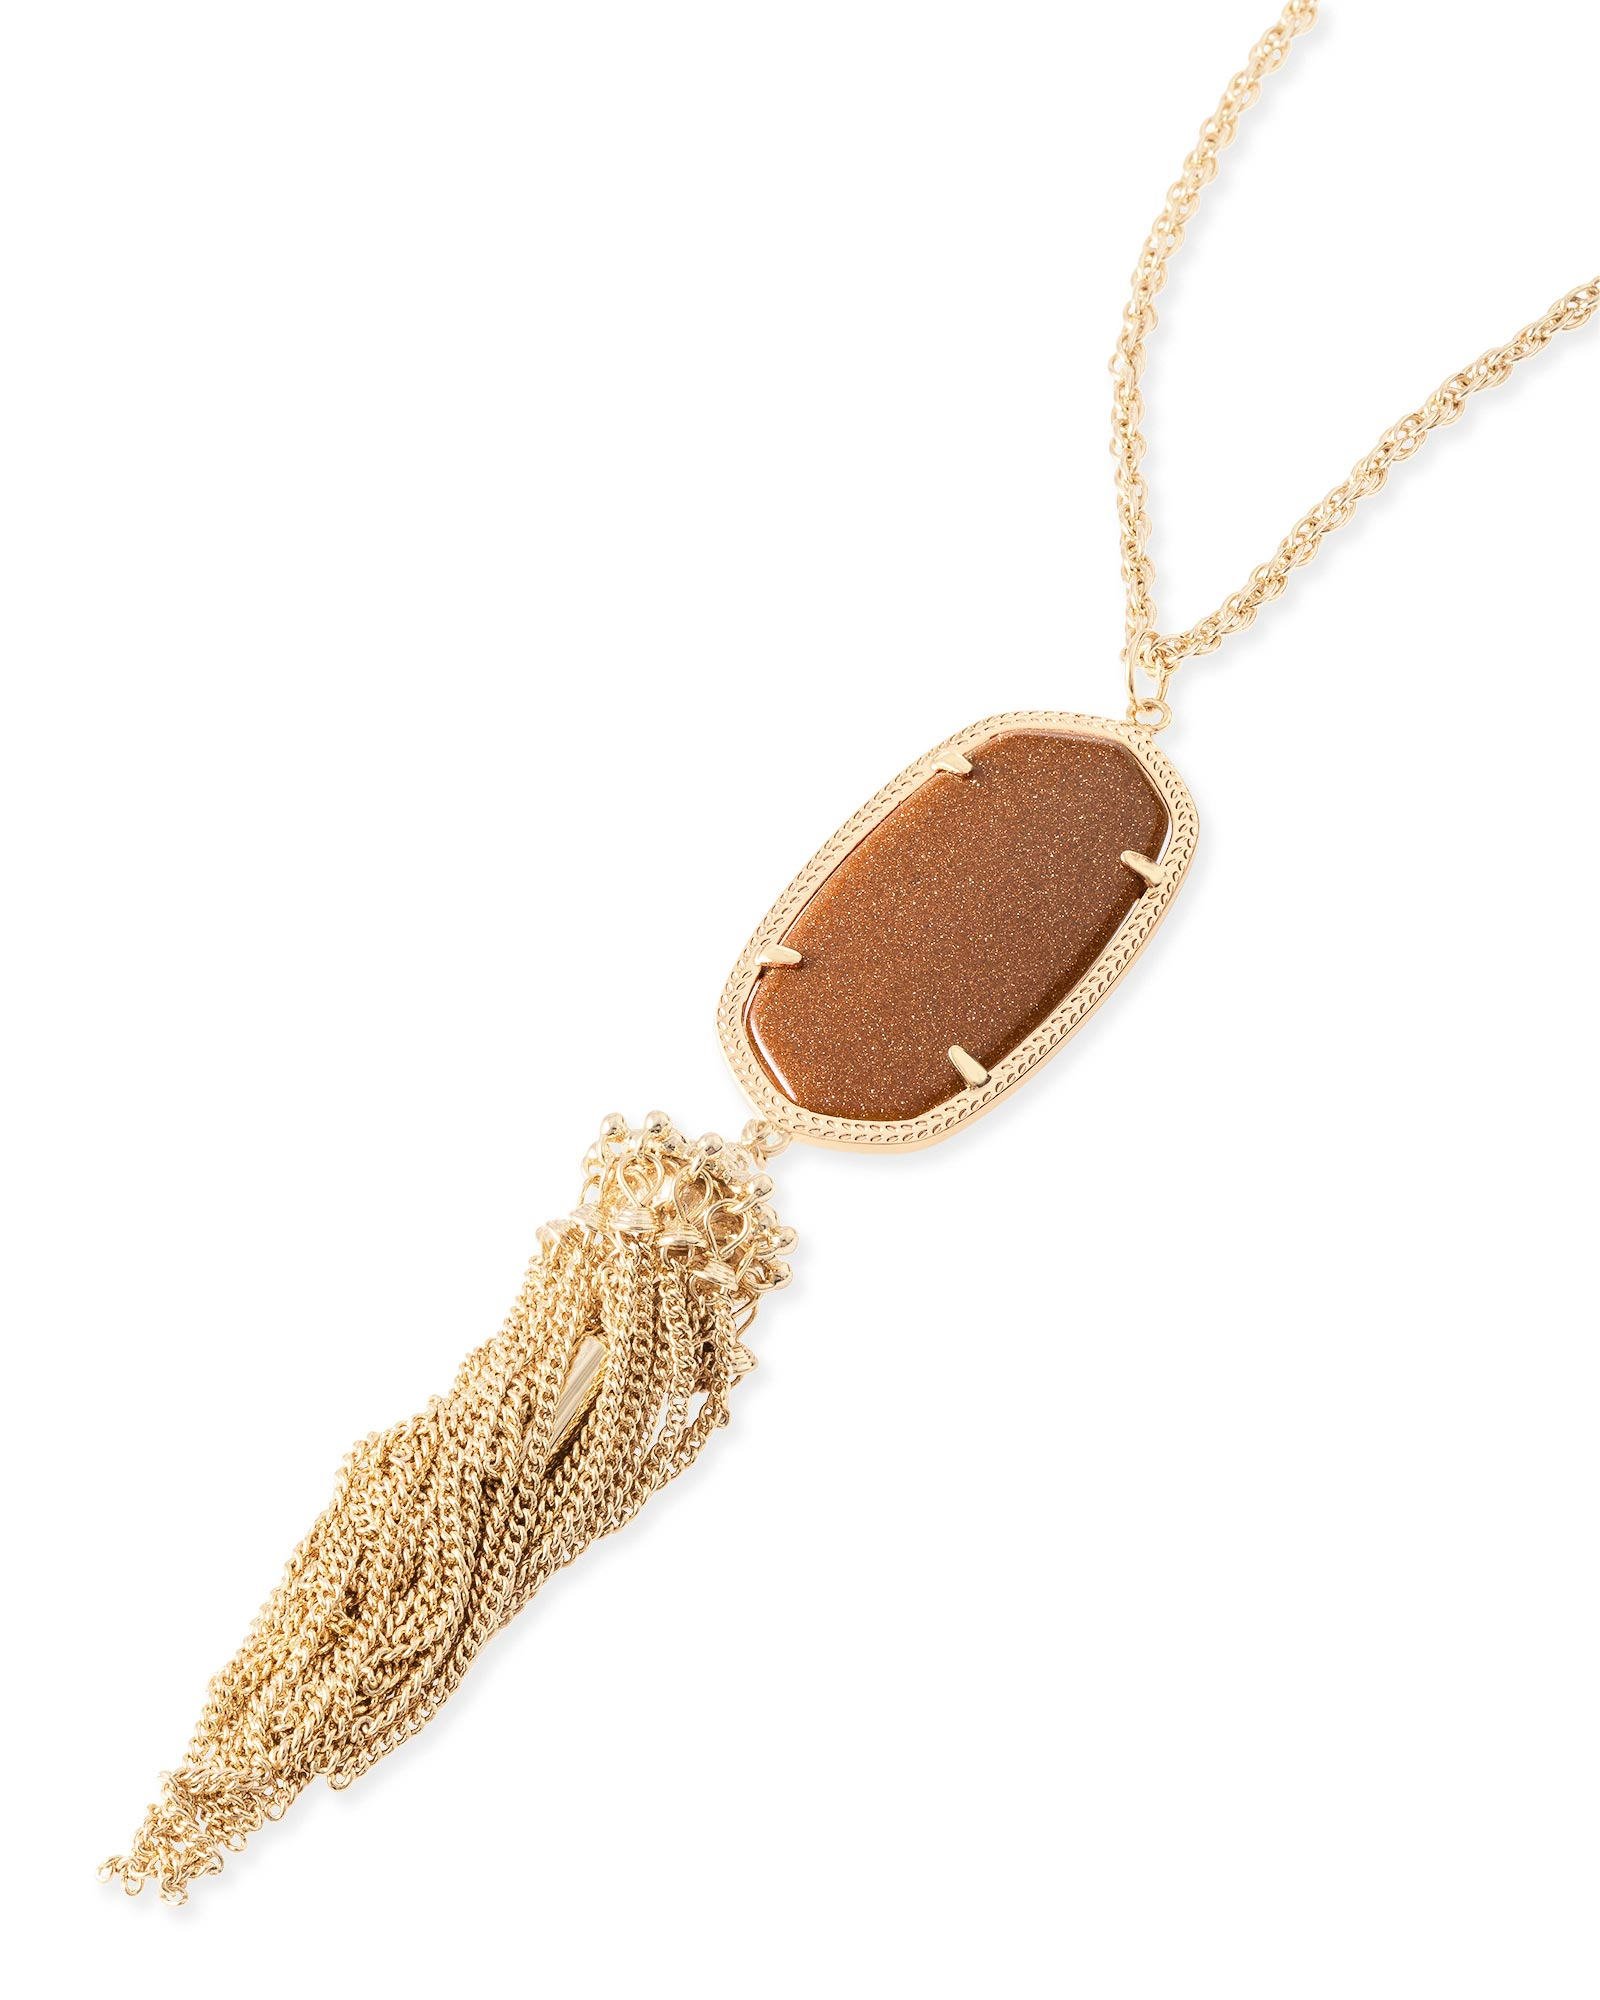 Rayne Necklace in Goldstone